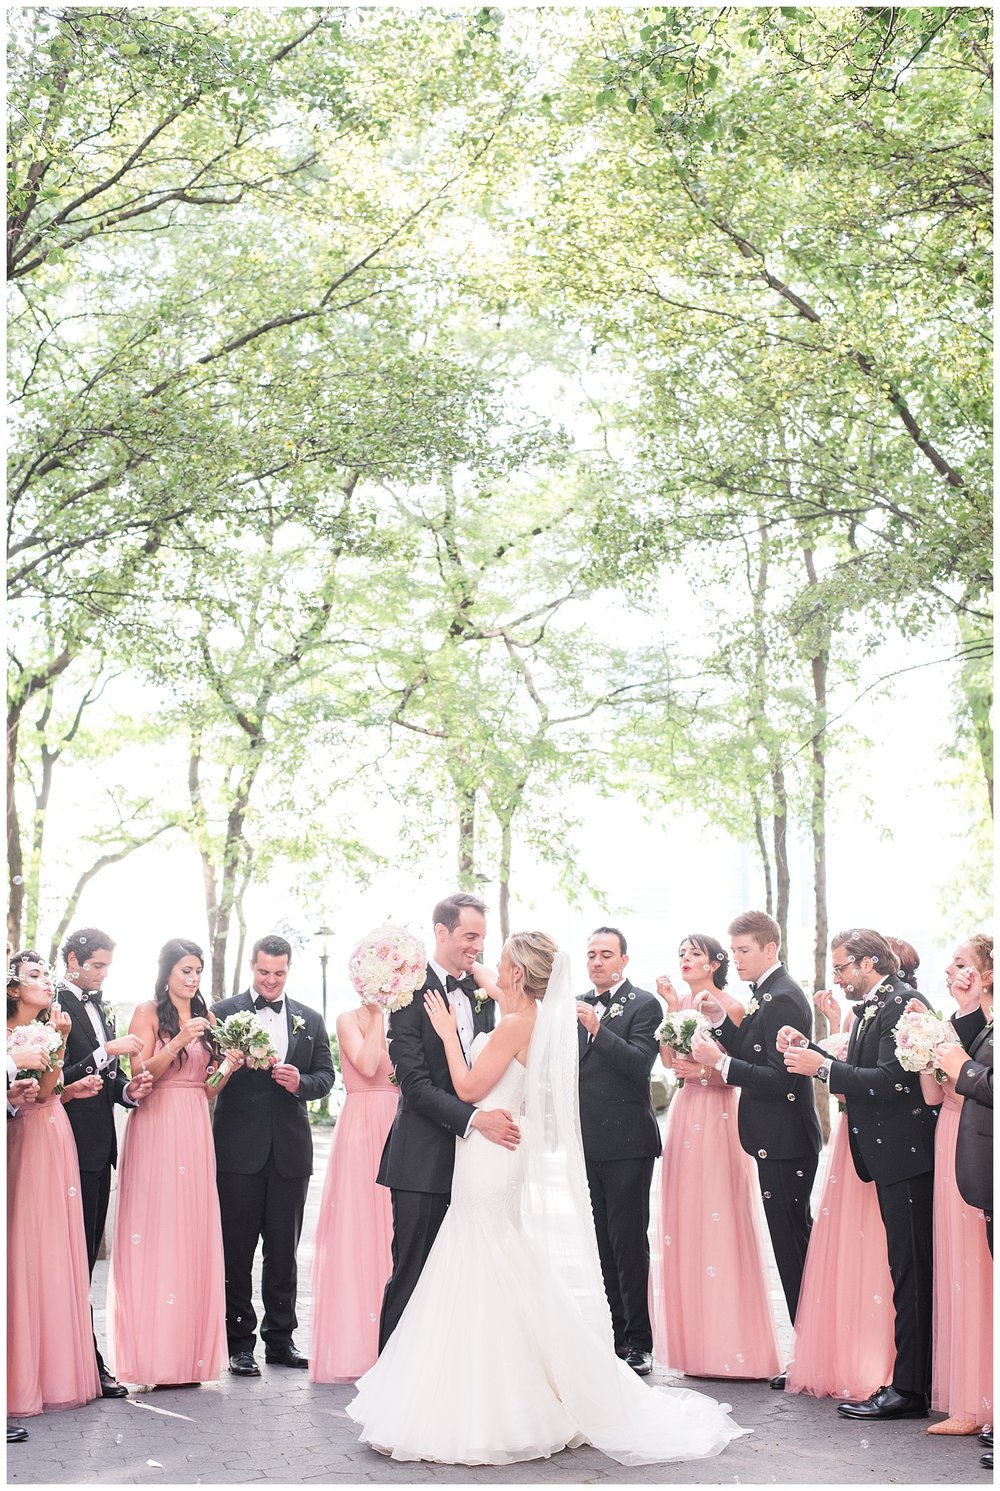 Chelsea_Piers_Lighthouse_Wedding_Fabiana_Skubic_Photography (22).jpg